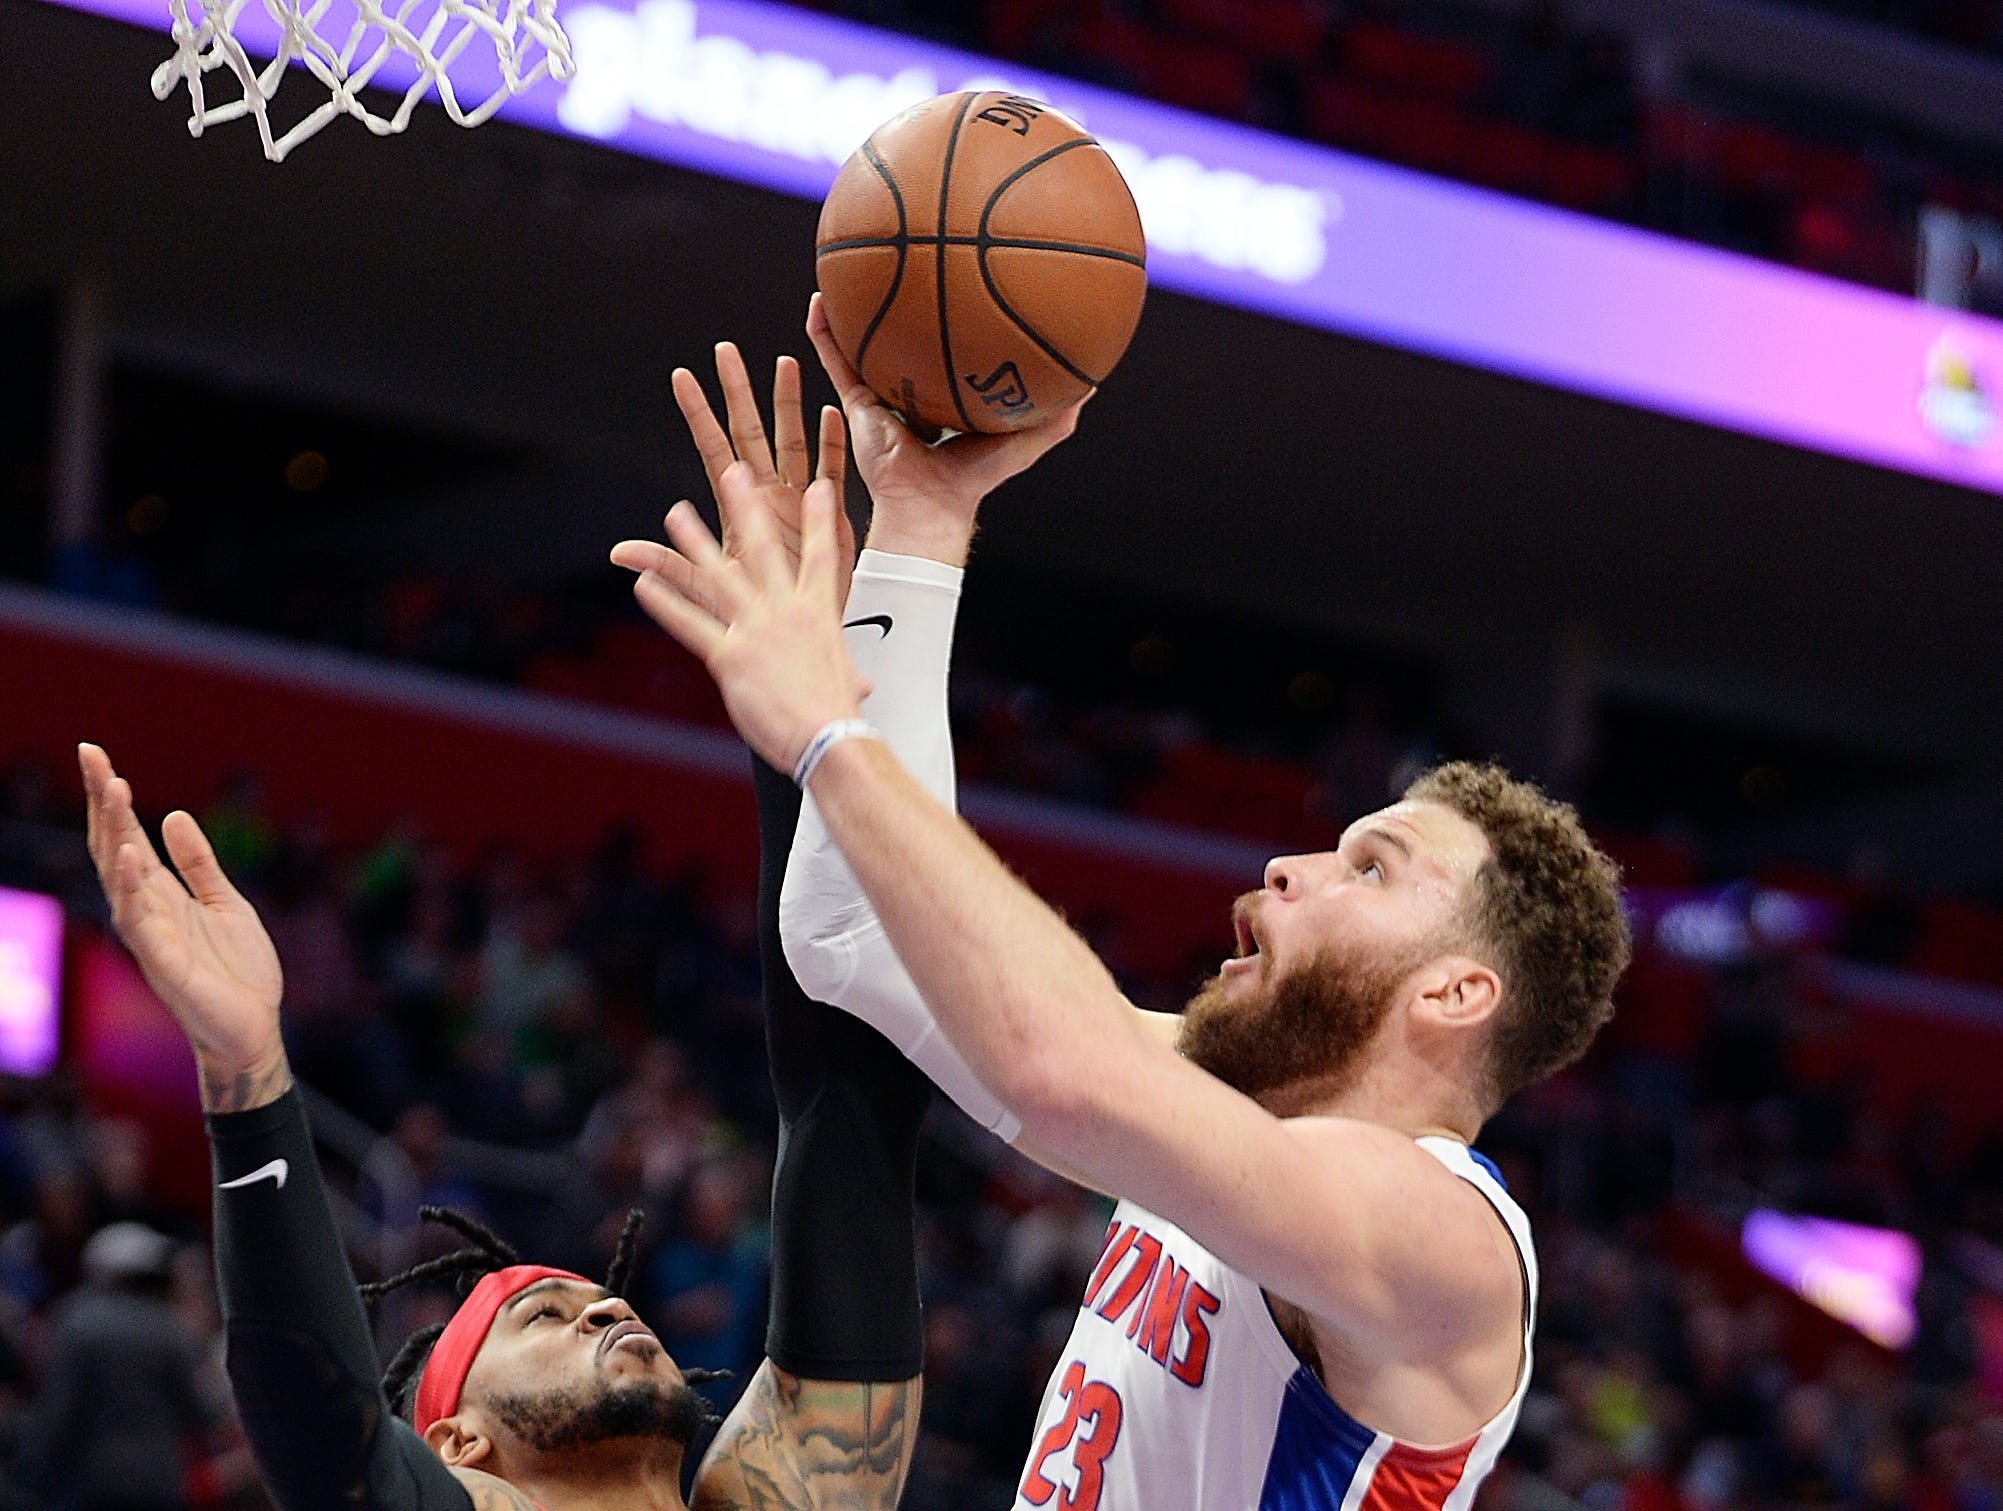 Pistons' Blake Griffin scores over Raptors' Eric Moreland in the fourth quarter.